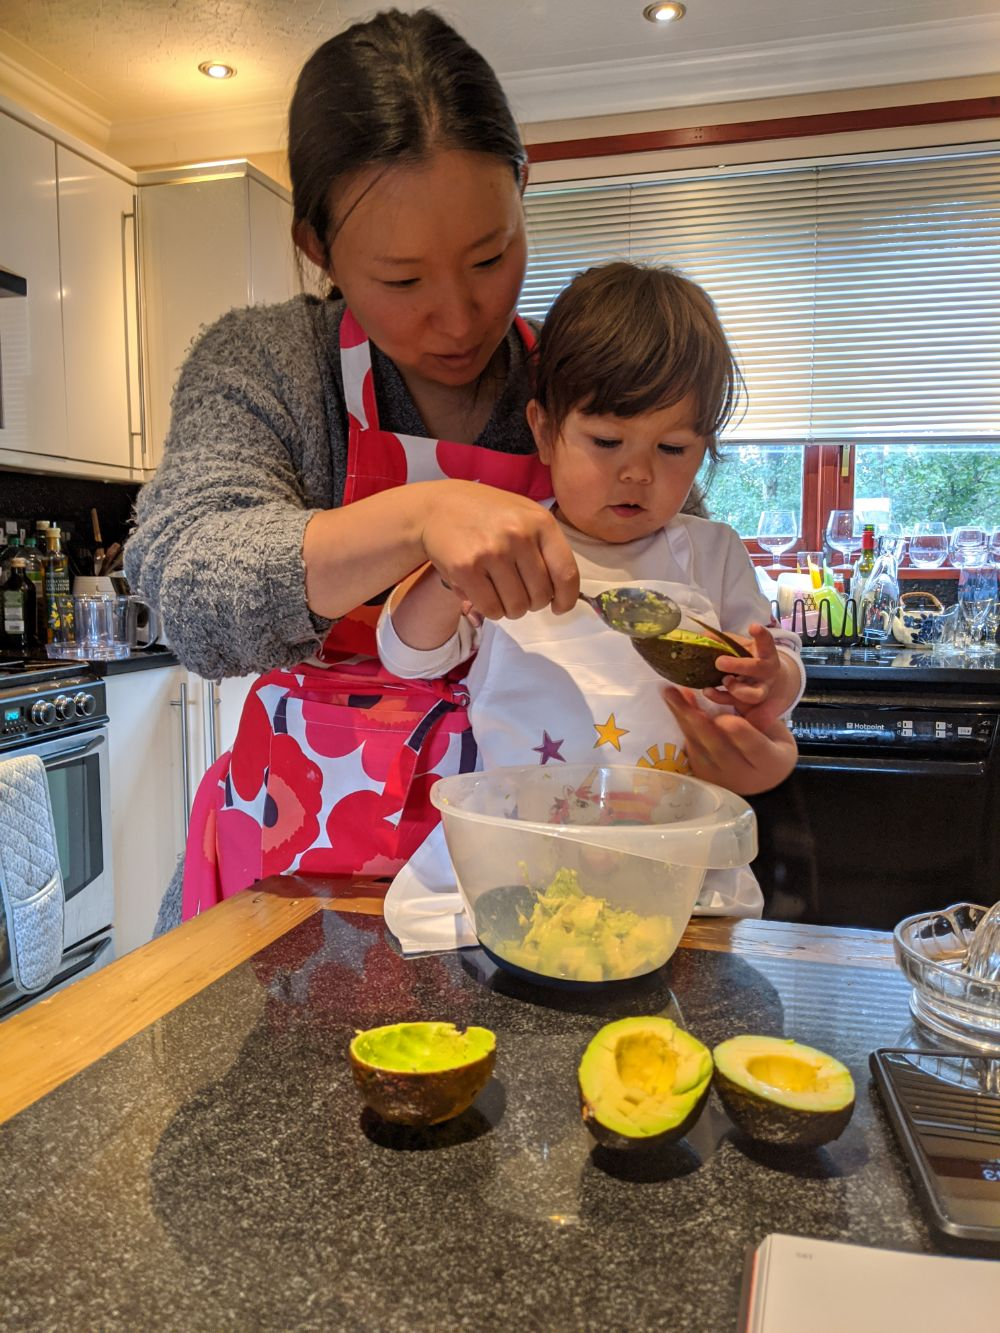 Alt not yet added, will fix!